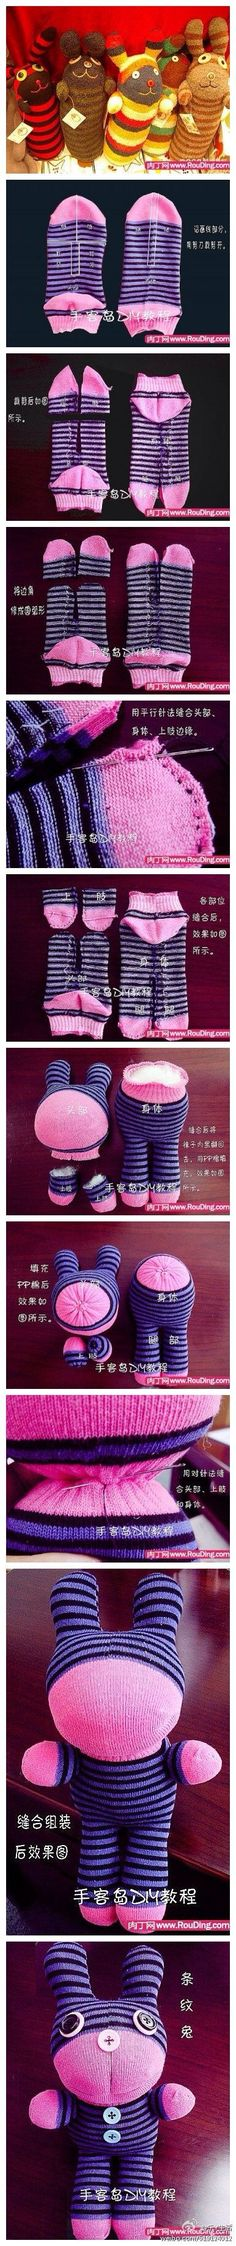 Sock bunny pic instructions- 31 Useful And Most Popular DIY Ideas Sock Crafts, Fabric Crafts, Crafts For Kids, Diy Projects To Try, Craft Projects, Sewing Projects, Sewing Toys, Sewing Crafts, Sock Dolls